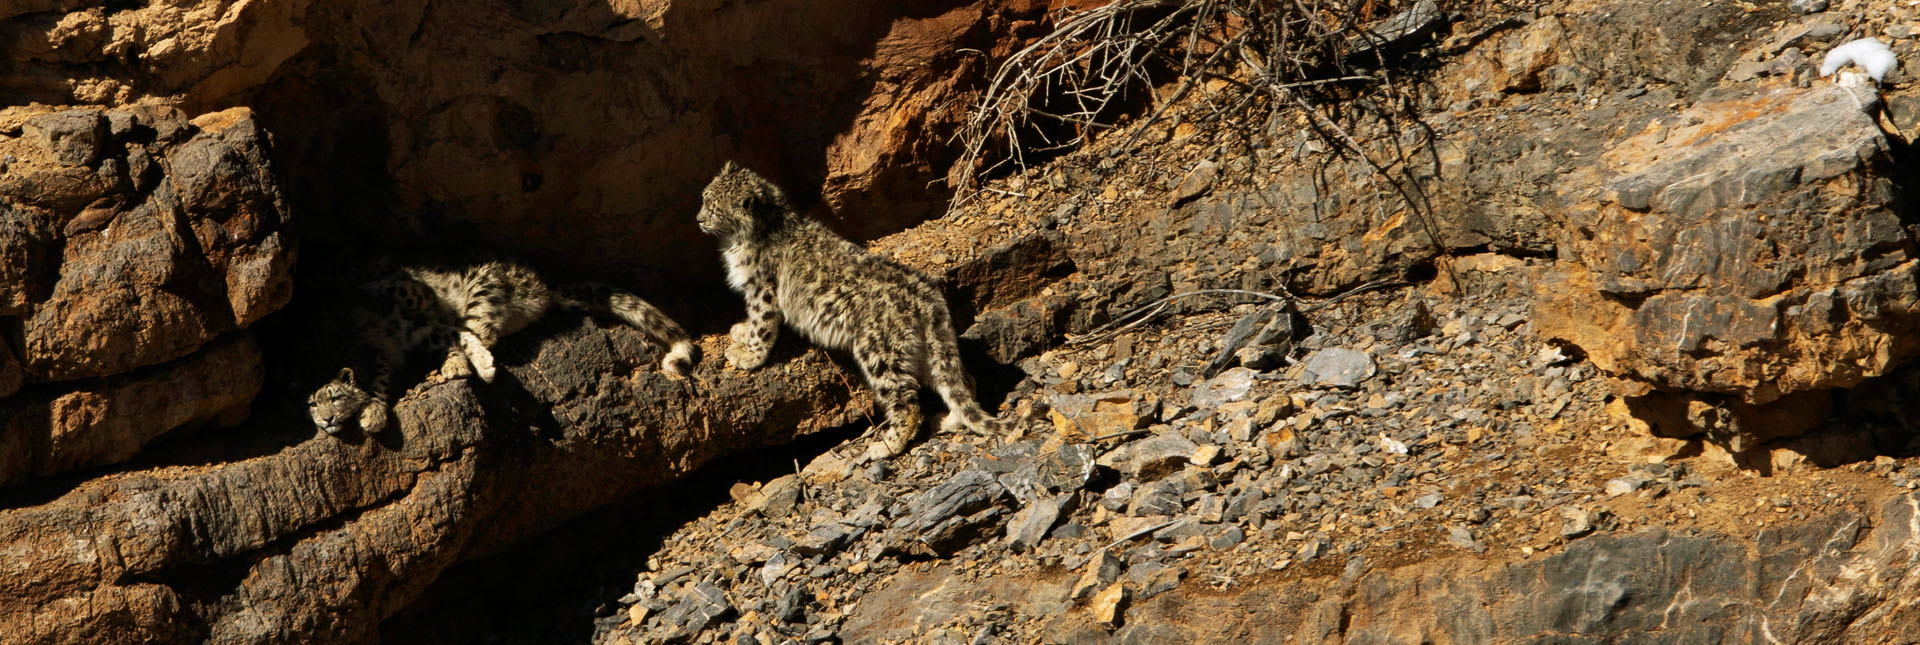 View of snow leopards